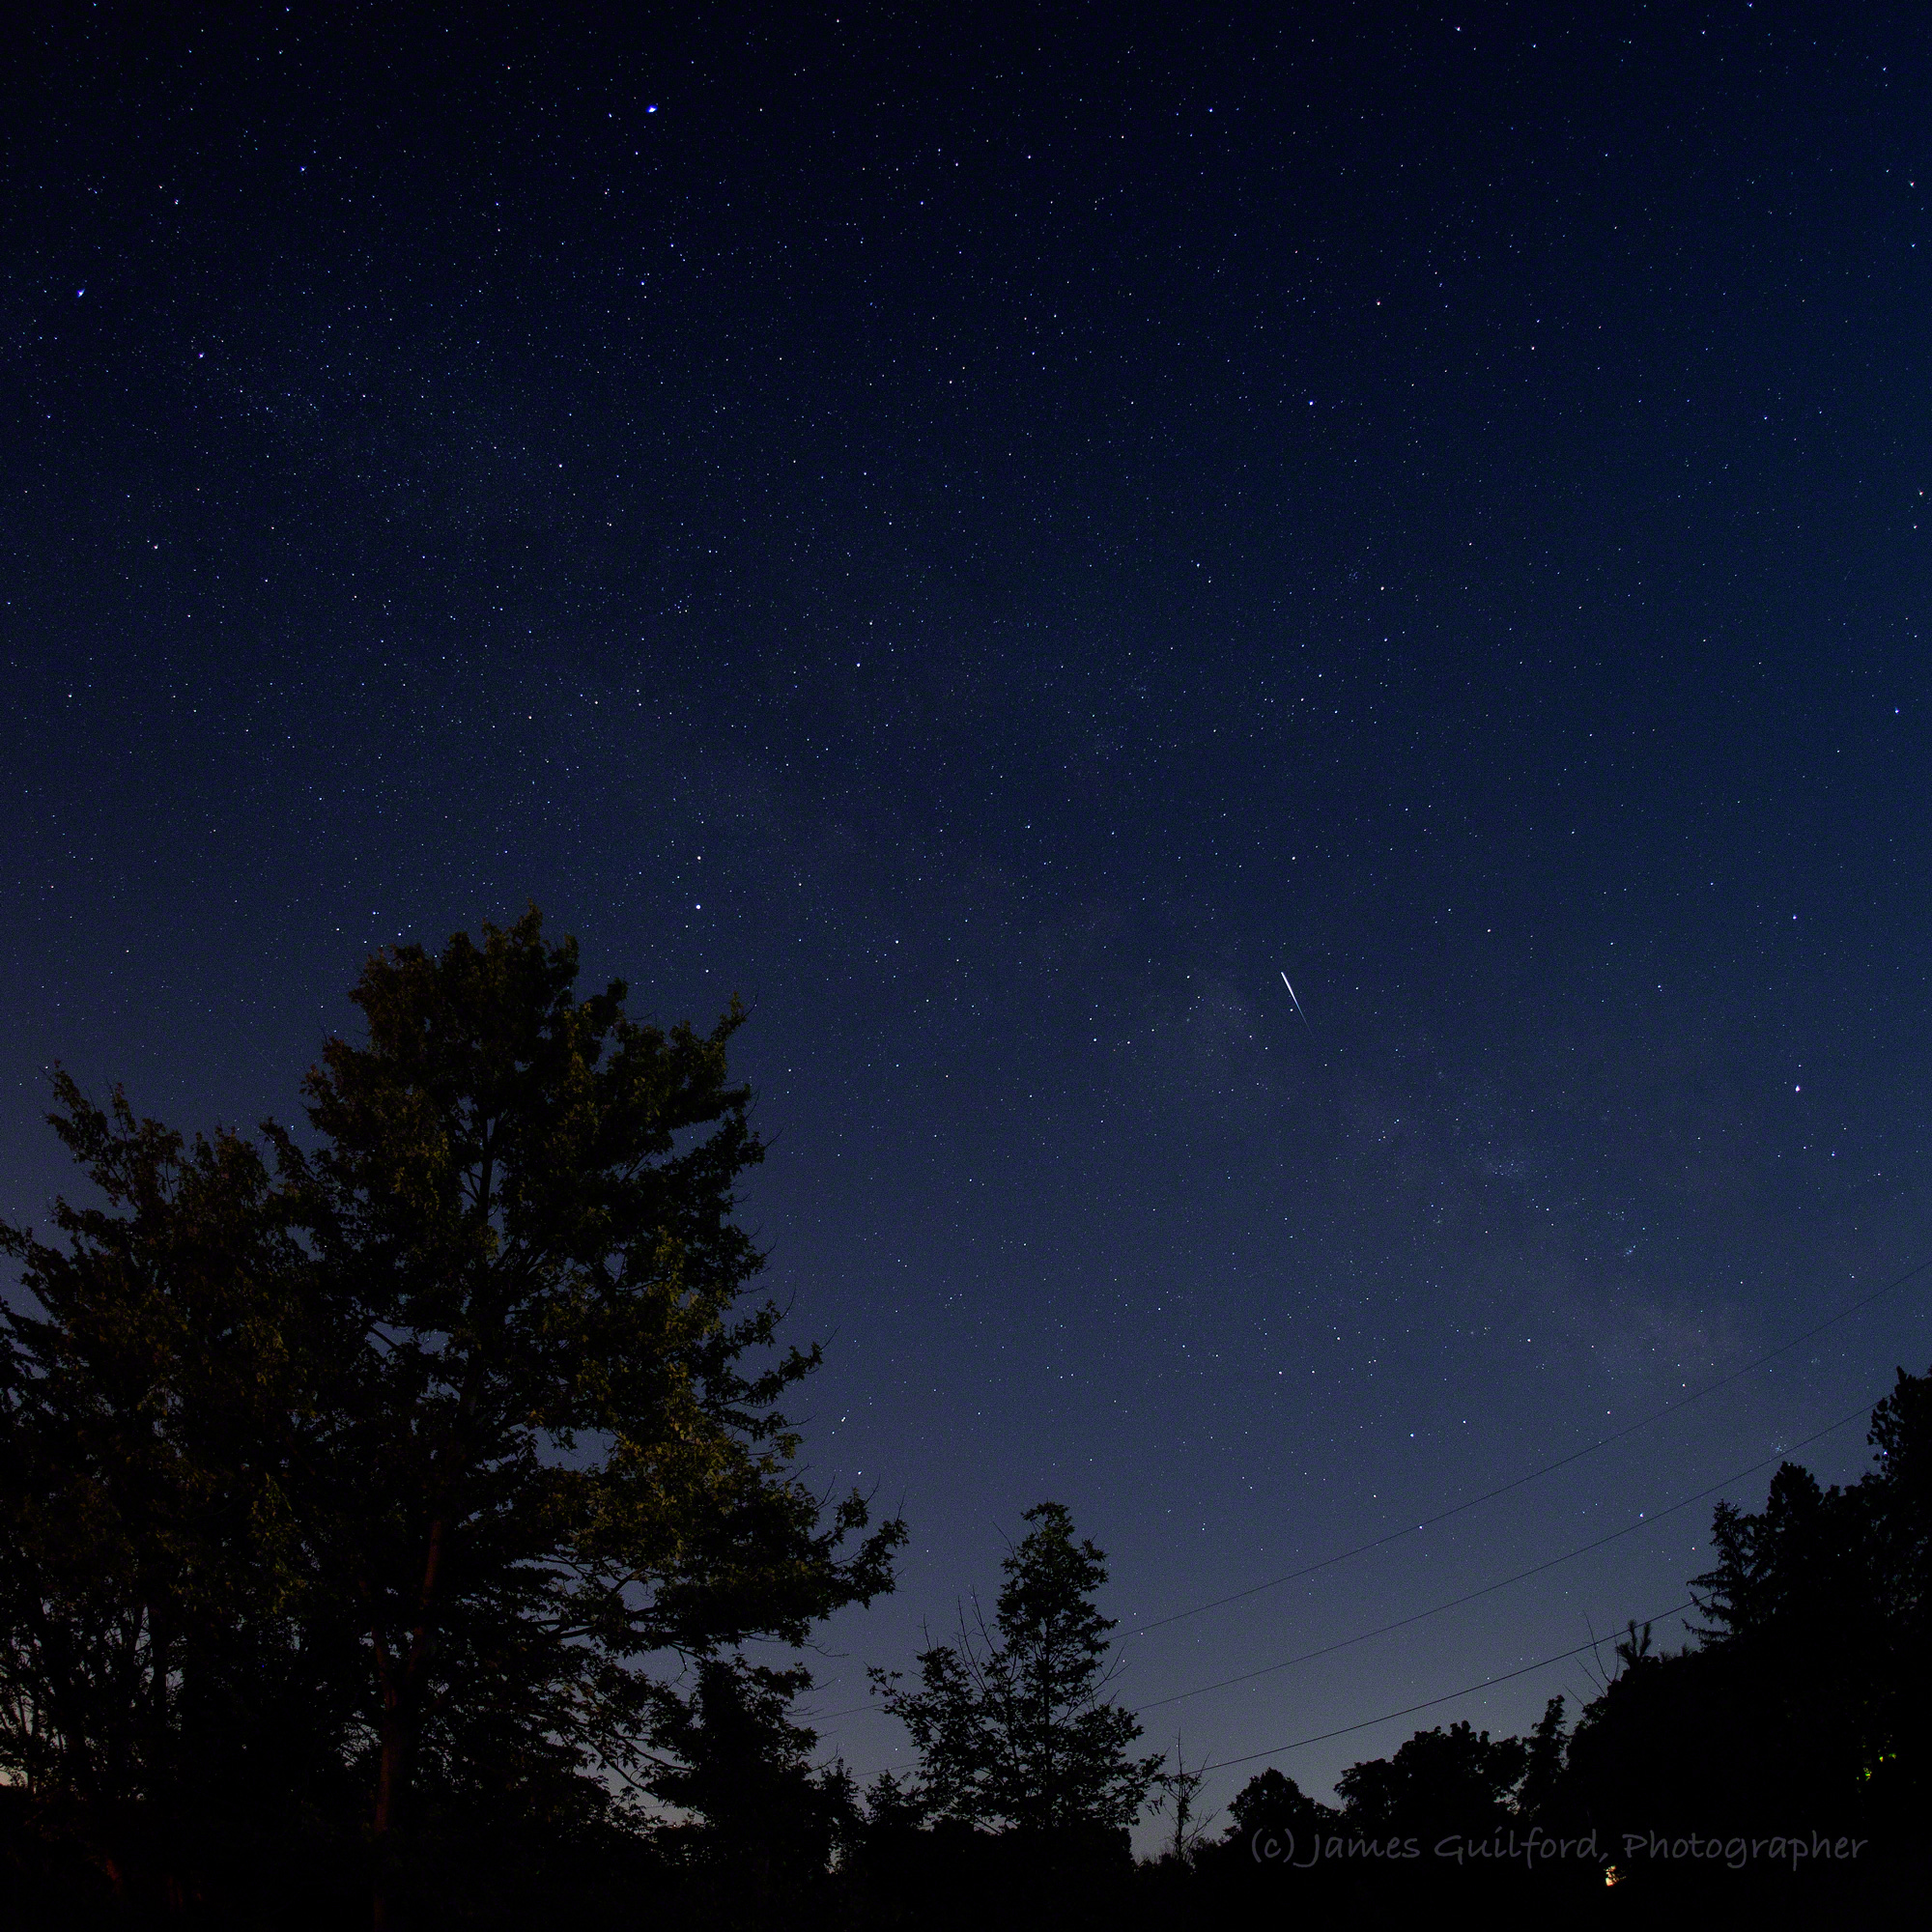 Photo: The streak of a small meteor with the Milky Way as background. Photo by James Guilford.